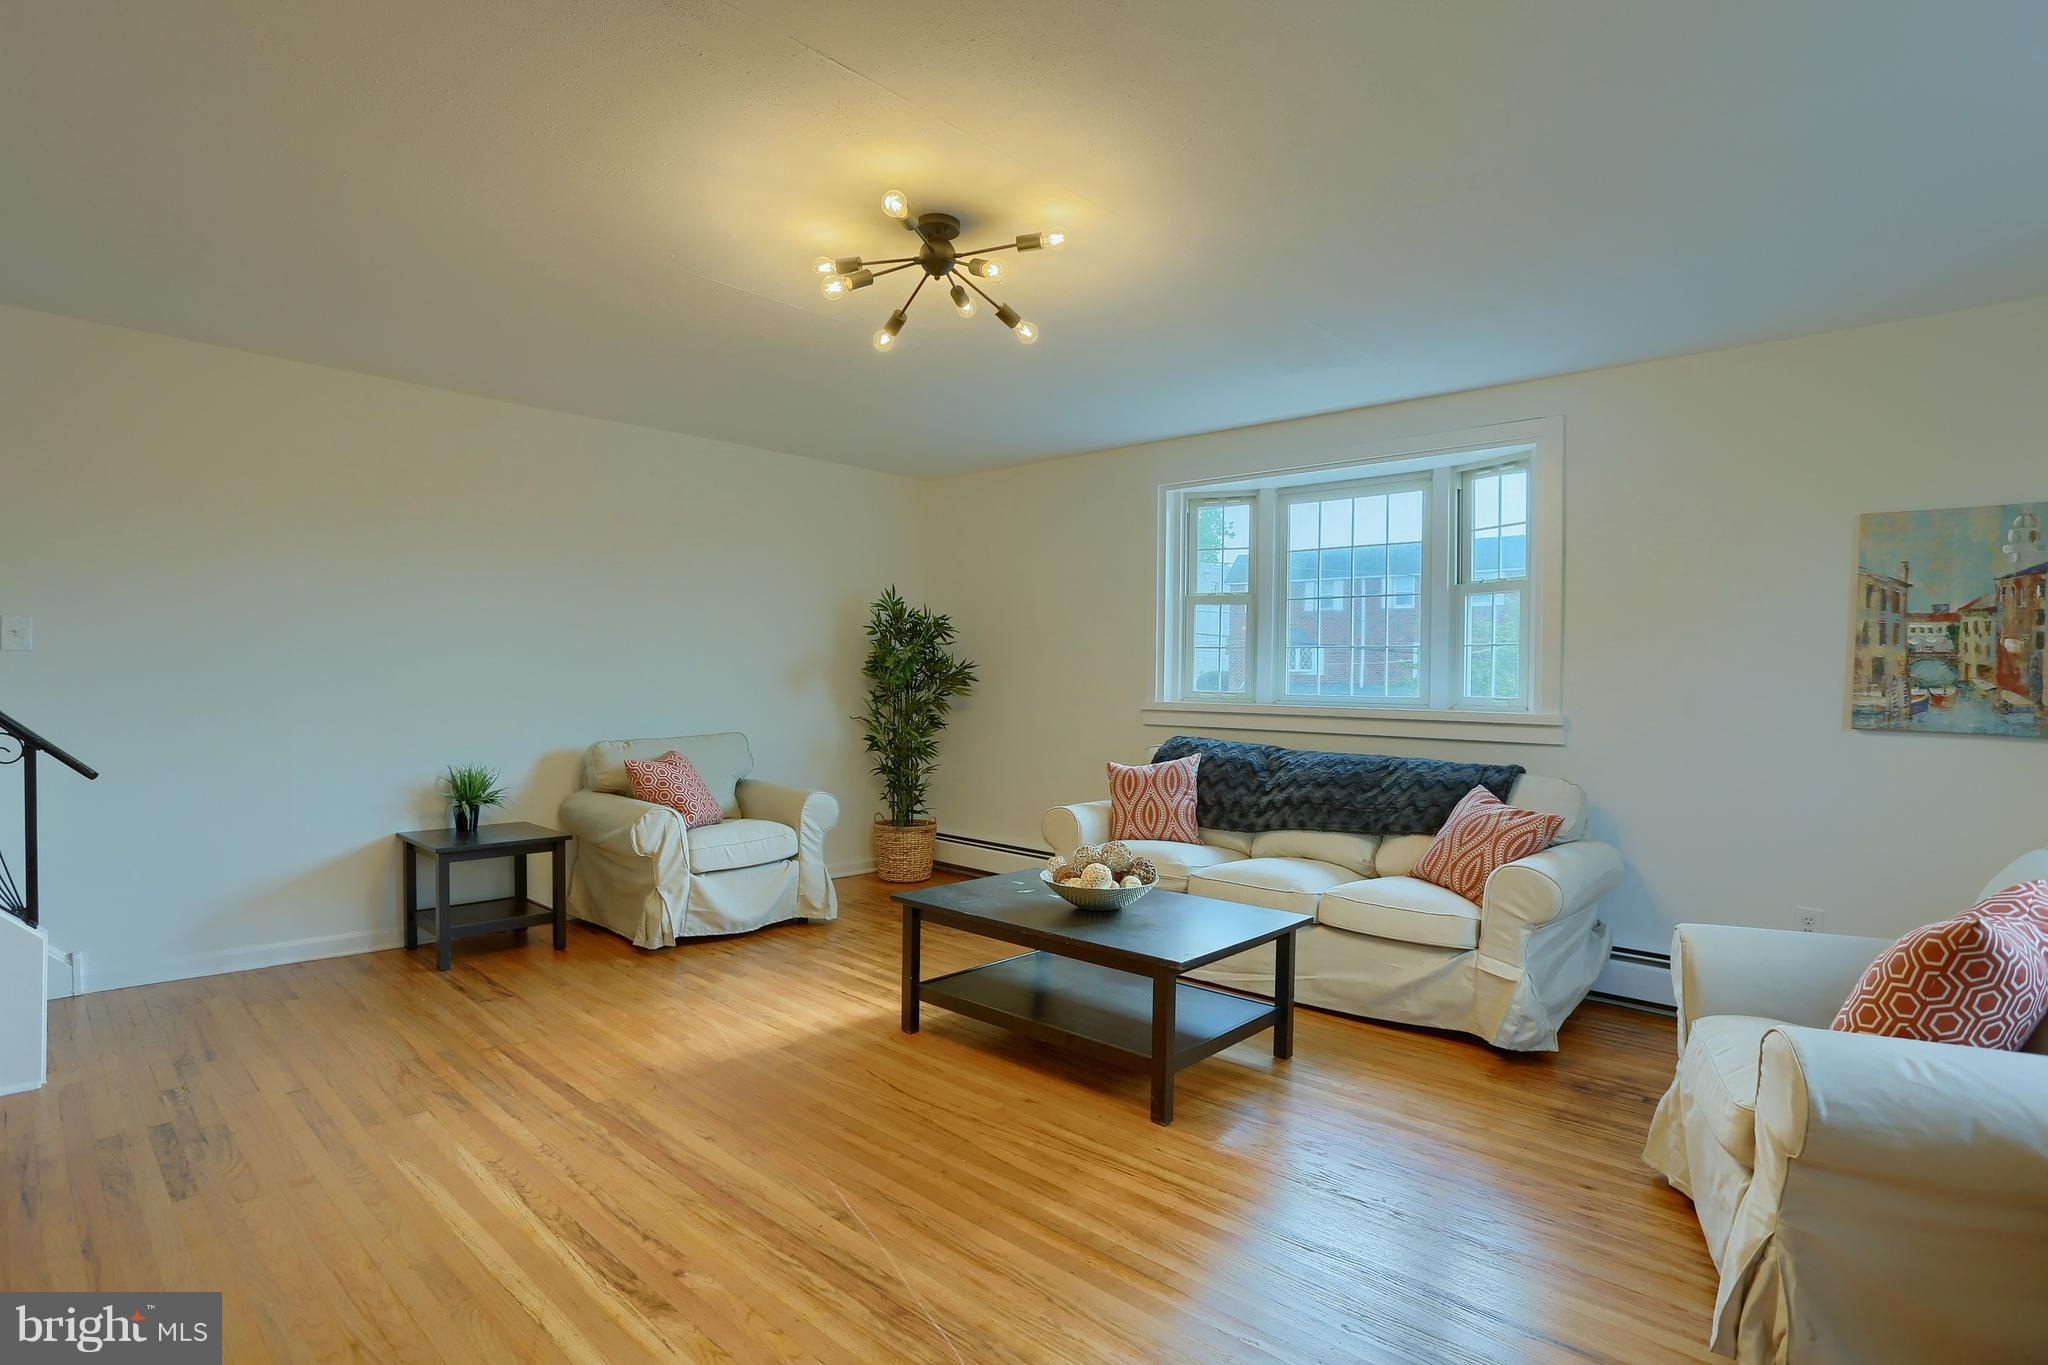 Residential for sale in NORRISTOWN, Pennsylvania, 1008341528